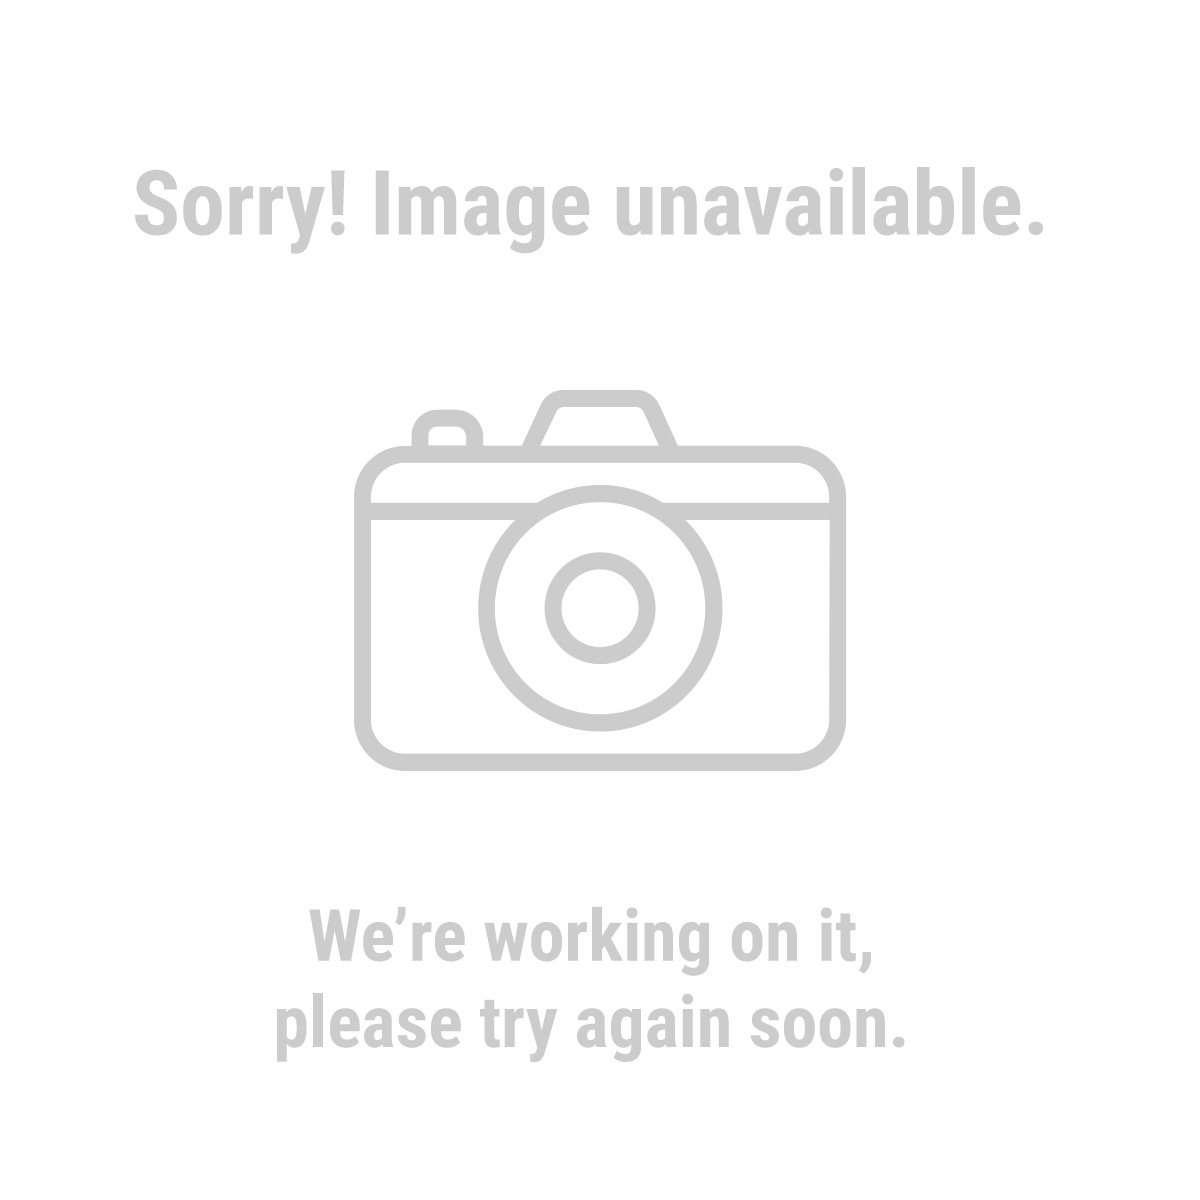 U.S. General® Pro 69387 44 in. 13 Drawer Glossy Red Industrial Roller Cabinet